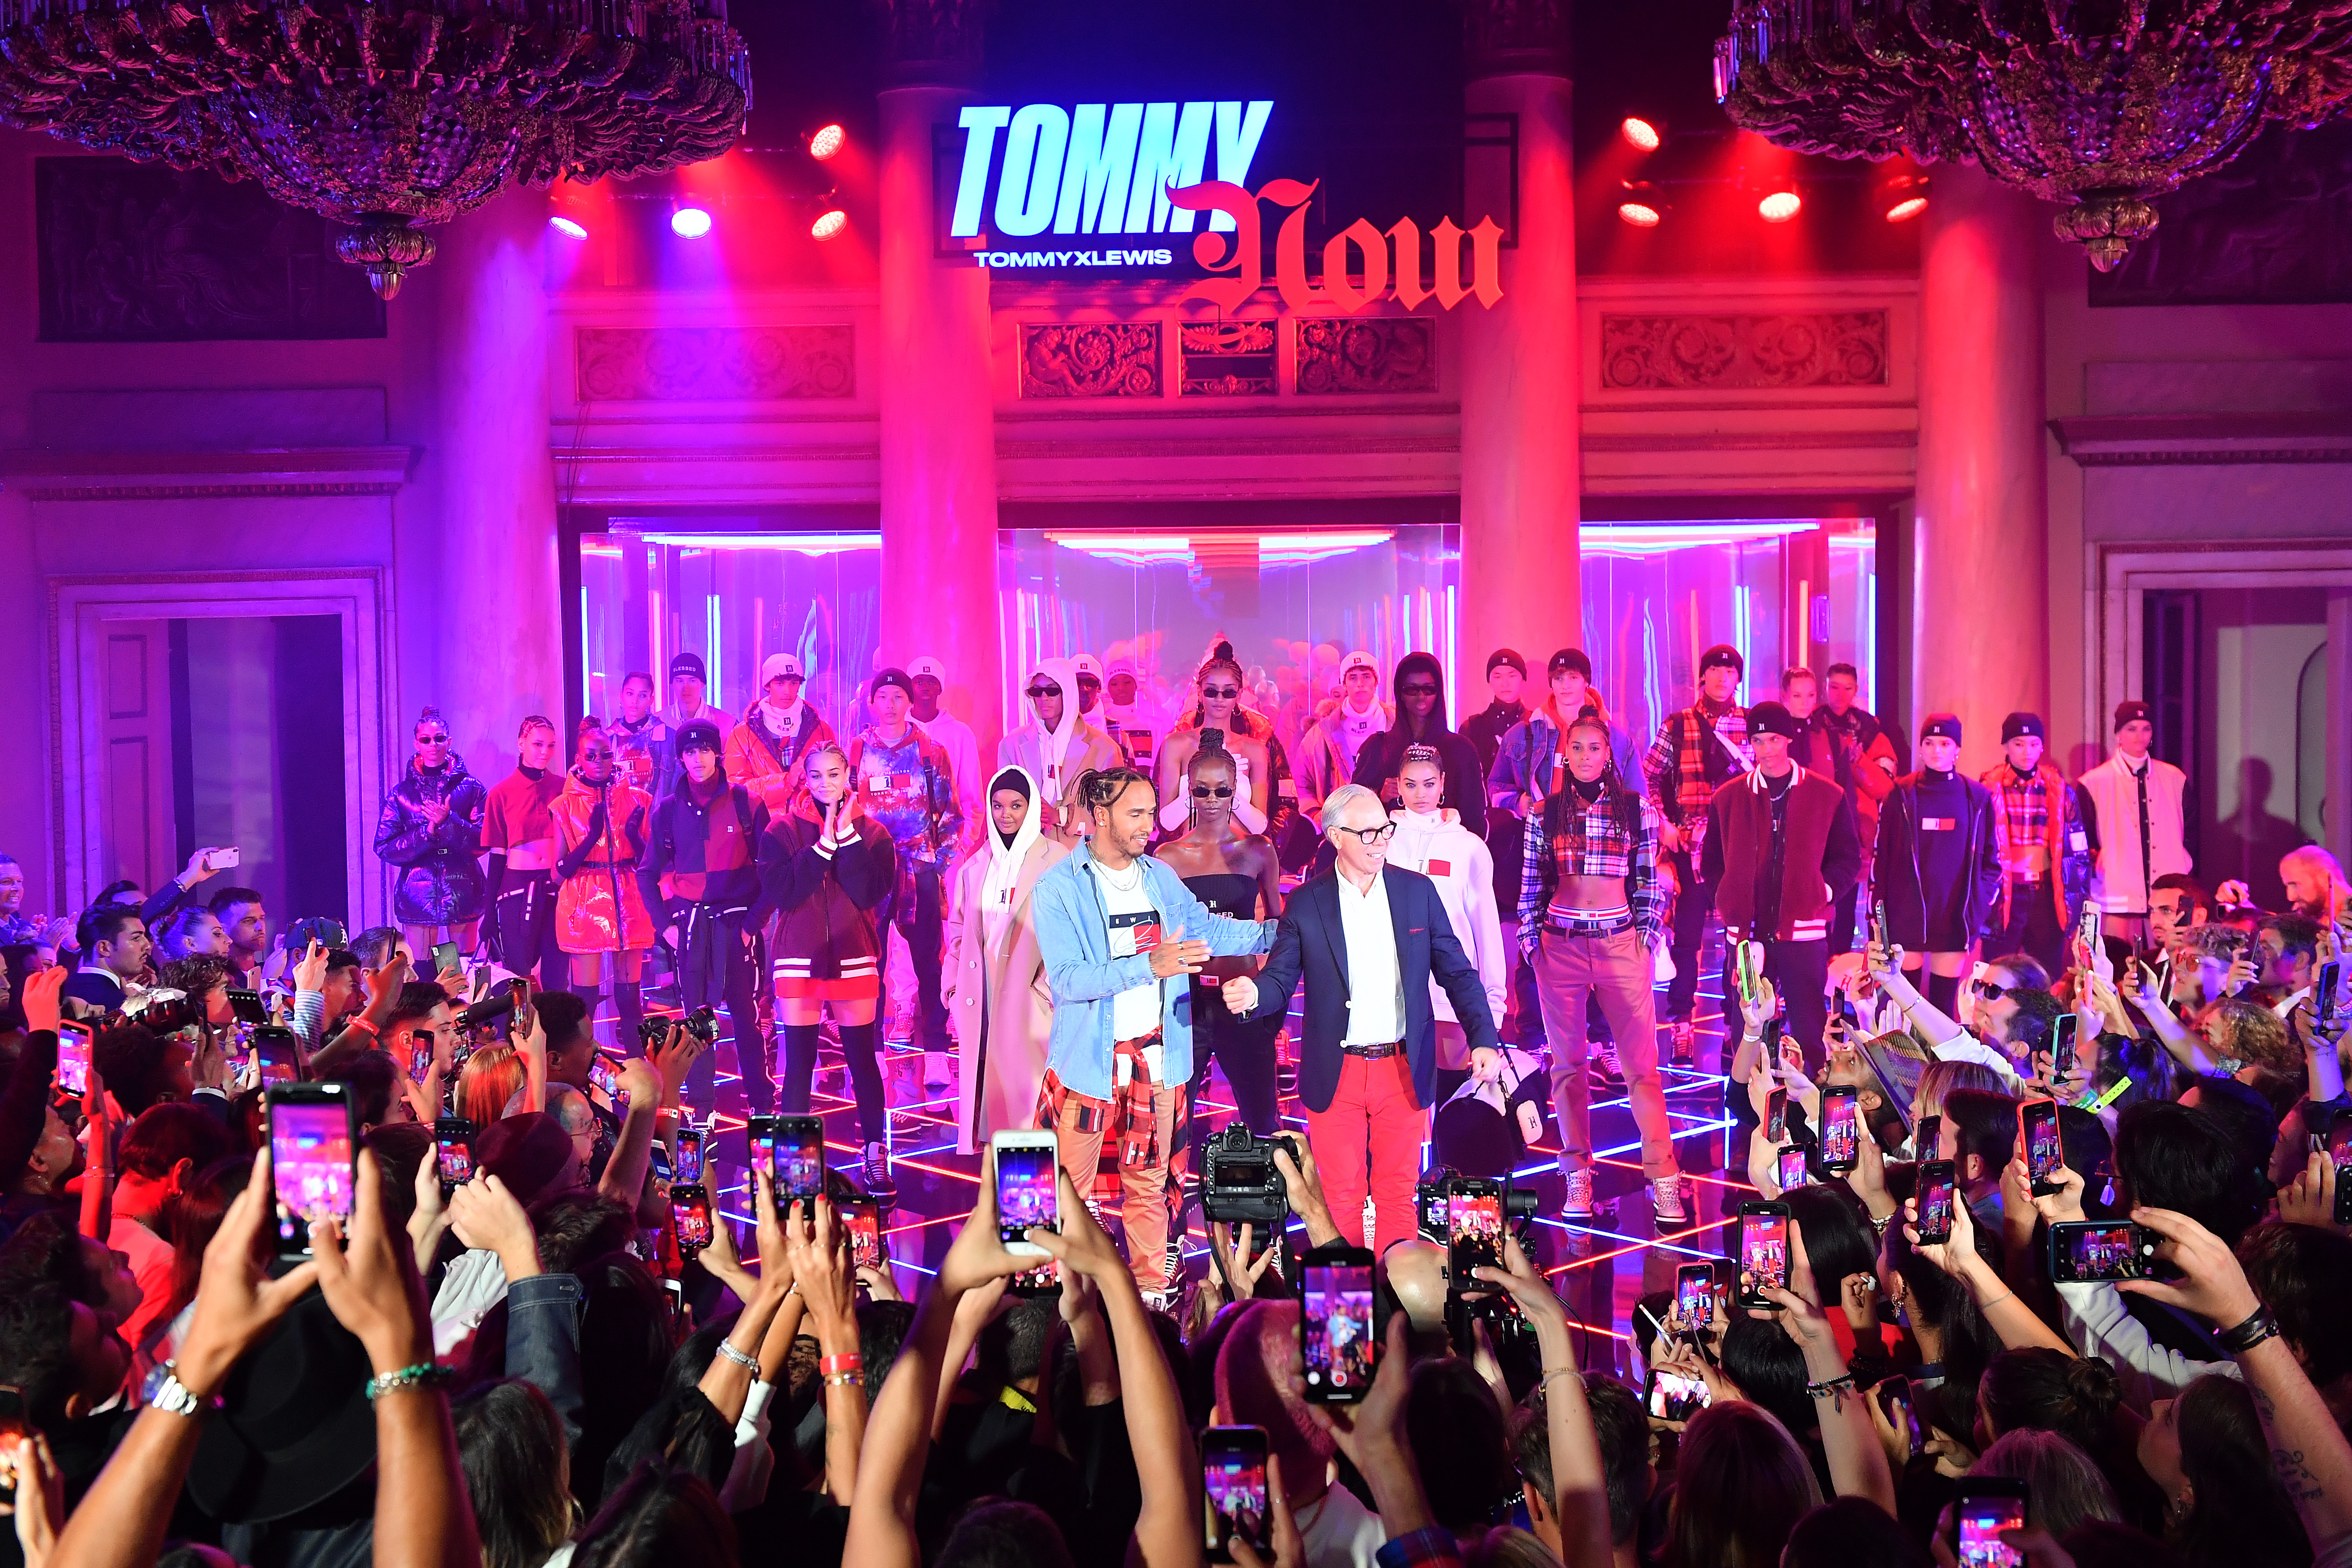 RIKY RICK WEARS TOMMY HILFIGER TO THE FALL 2019 TOMMYNOW TOMMYXLEWIS EXPERIENTIAL EVENT IN MILAN Tommy and Lewis Bow01 JPG